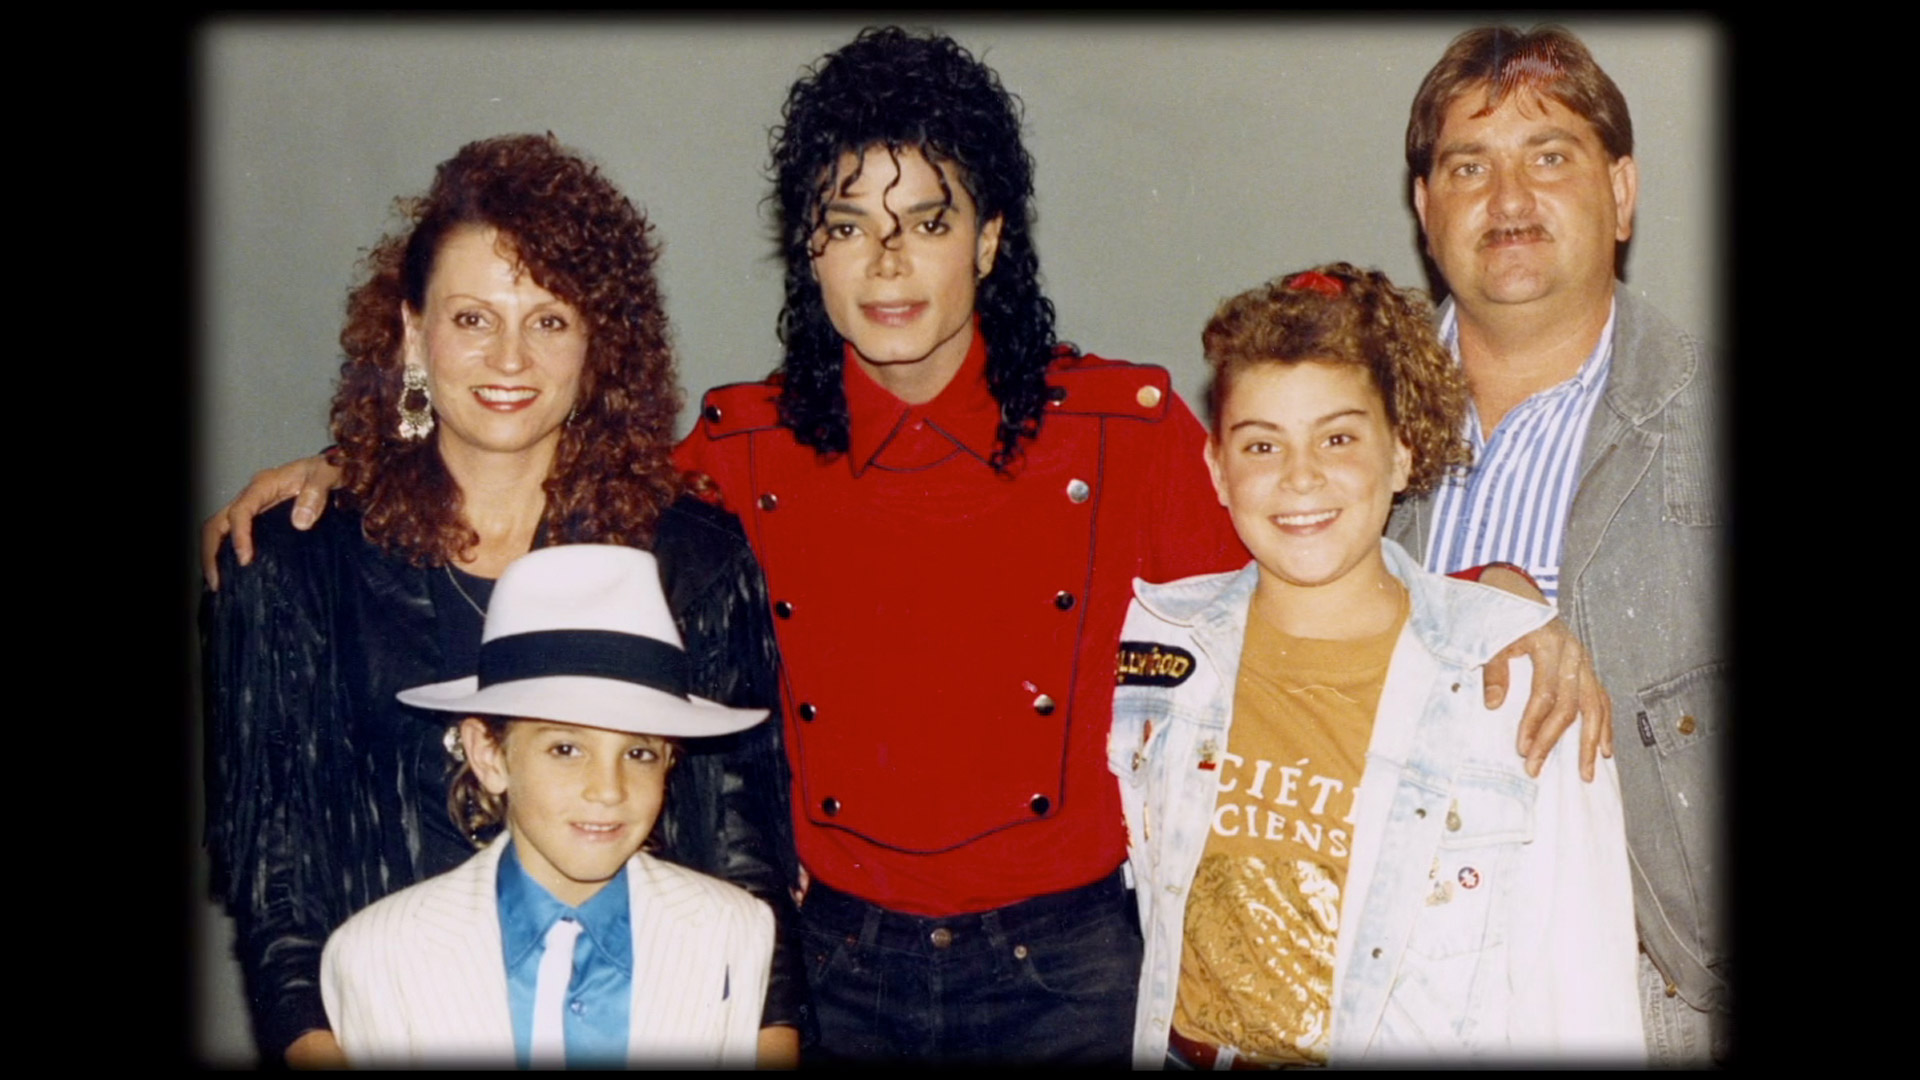 The Robson family, as seen in HBO's Leaving Neverland, with Michael Jackson.